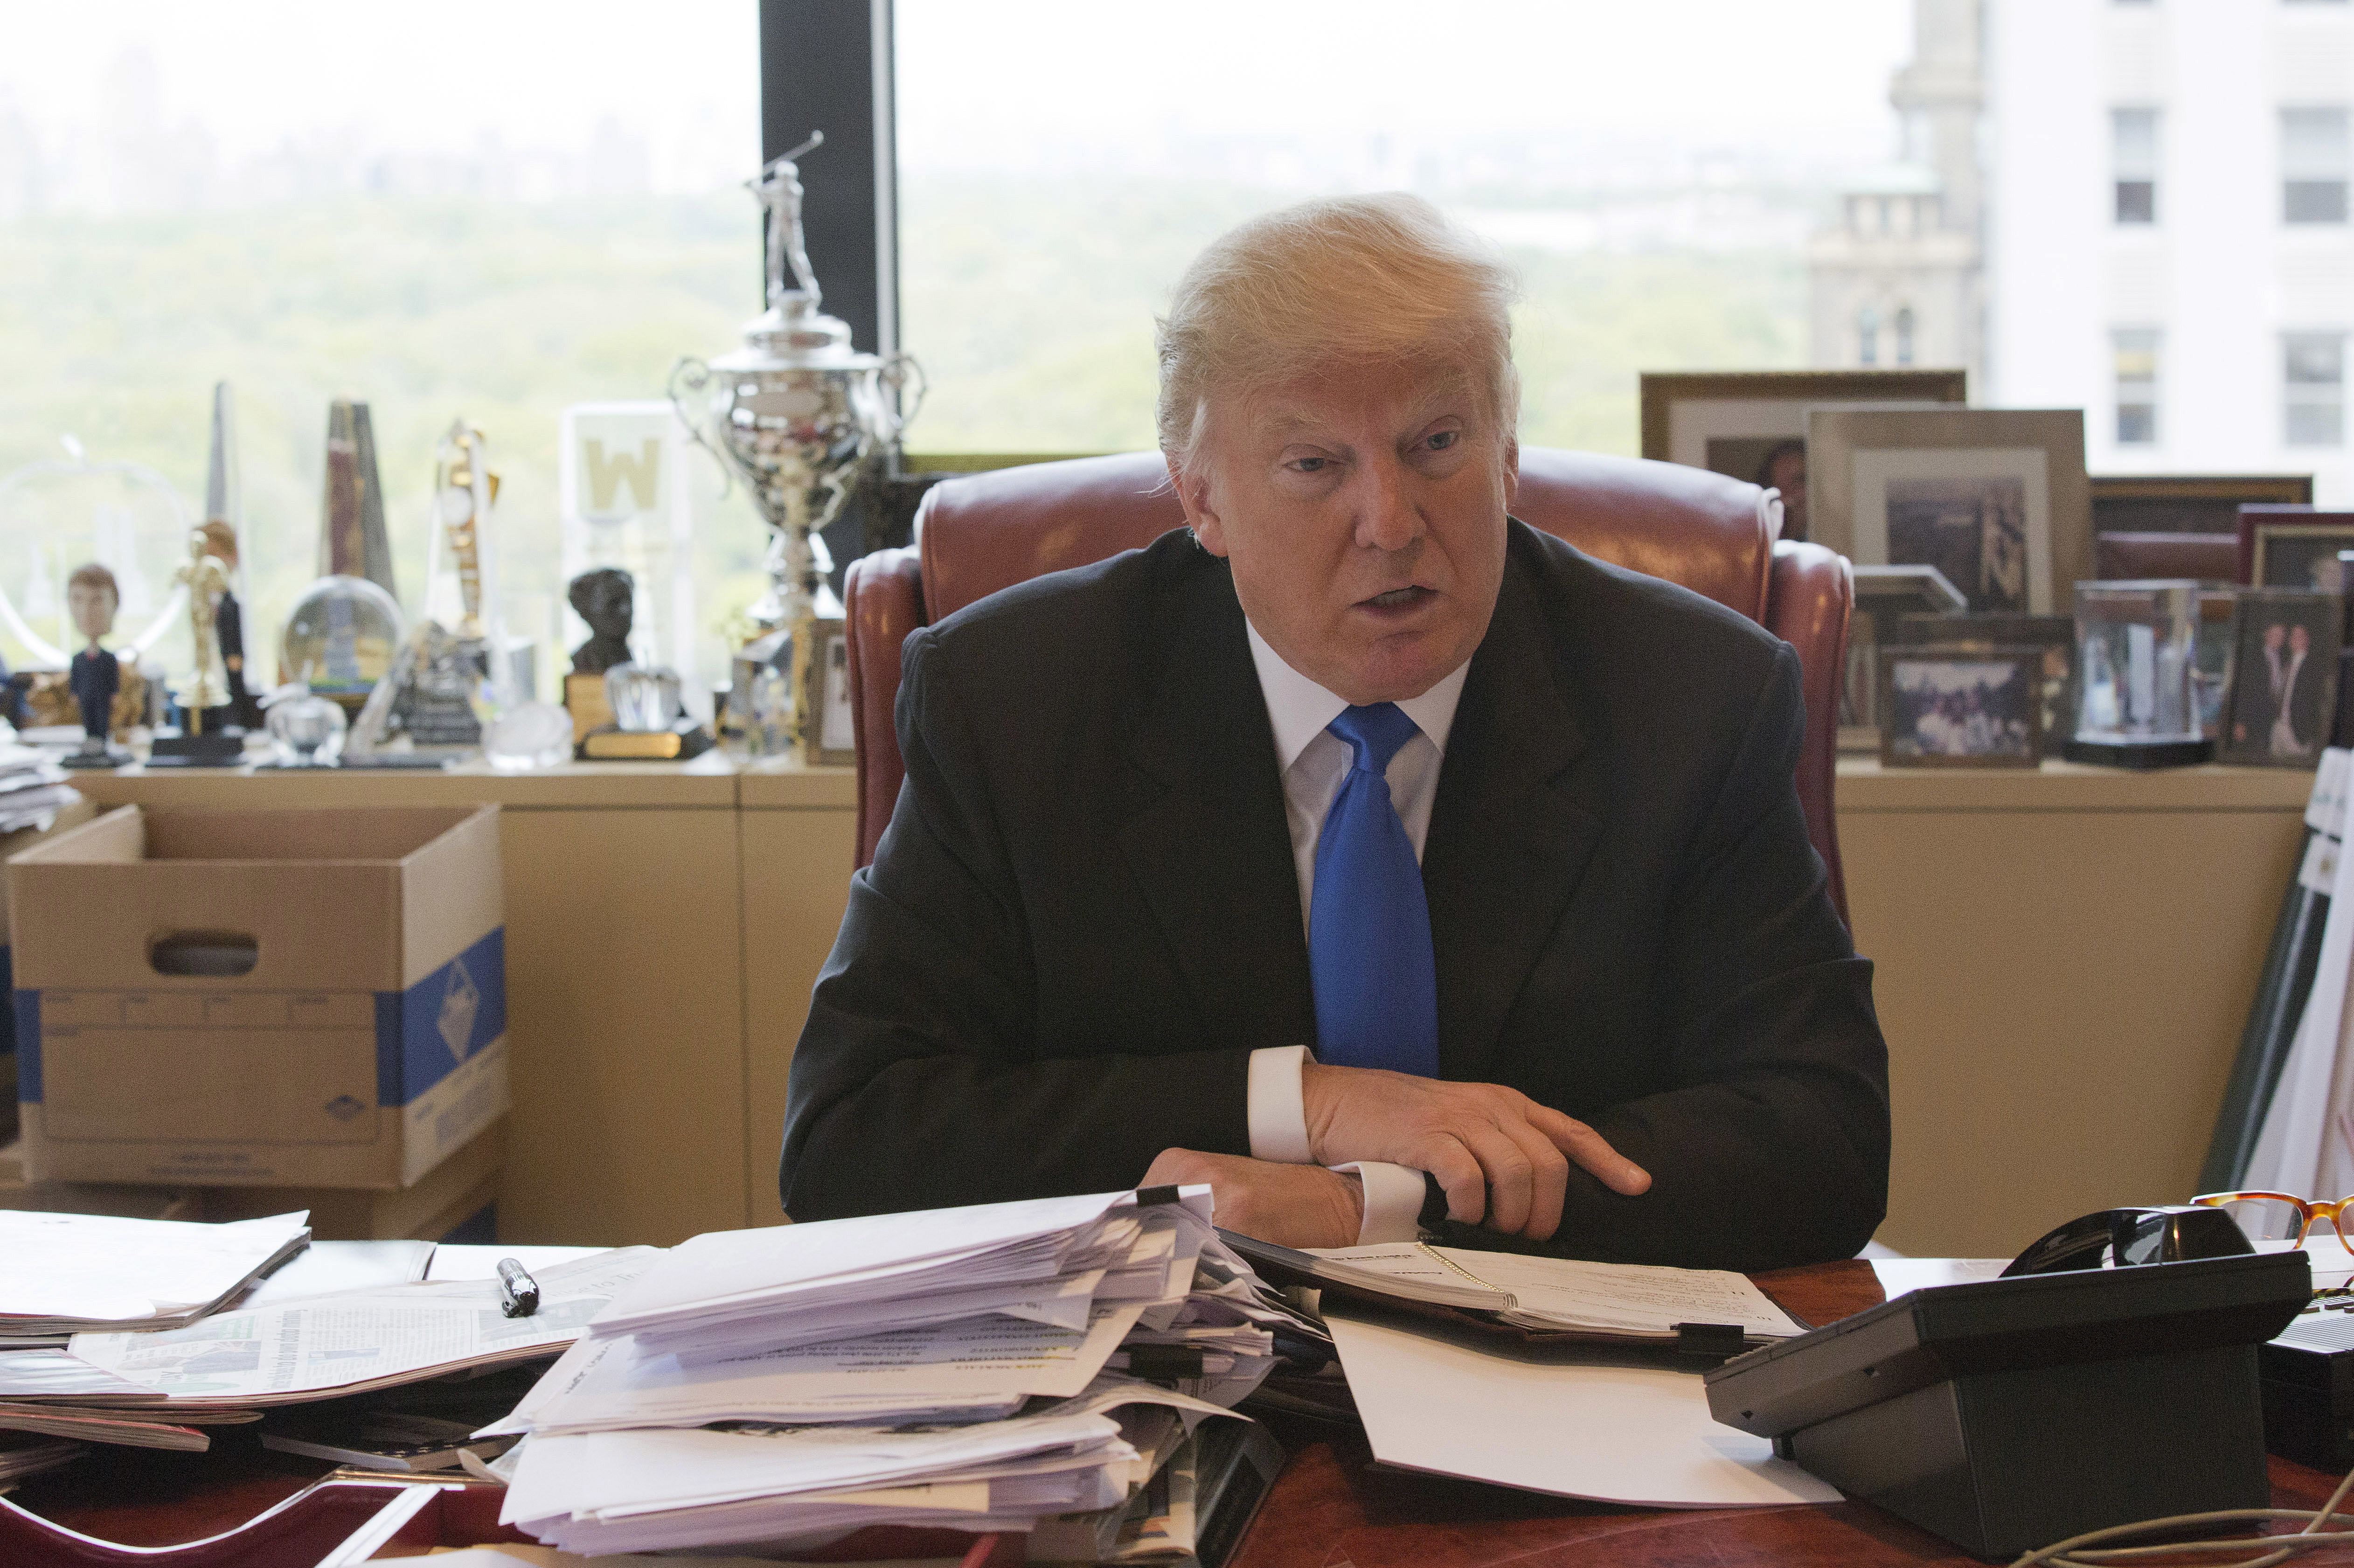 Republican presidential candidate Donald Trump speaks during an interview with The Associated Press in his office at Trump Tower, Tuesday, May 10, 2016, in New York